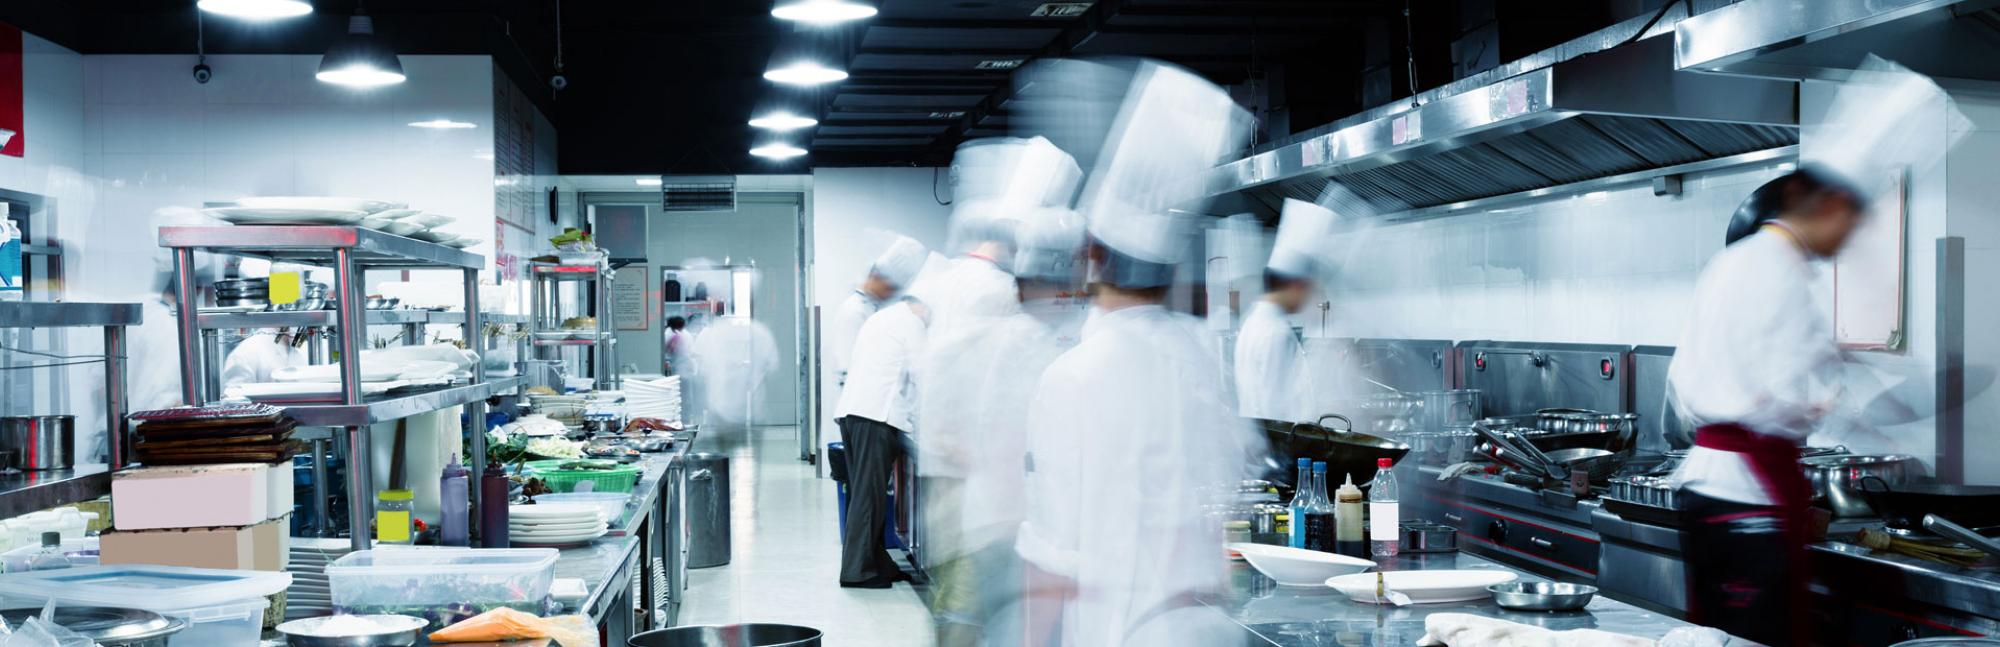 Blurred view of chefs working in a kitchen